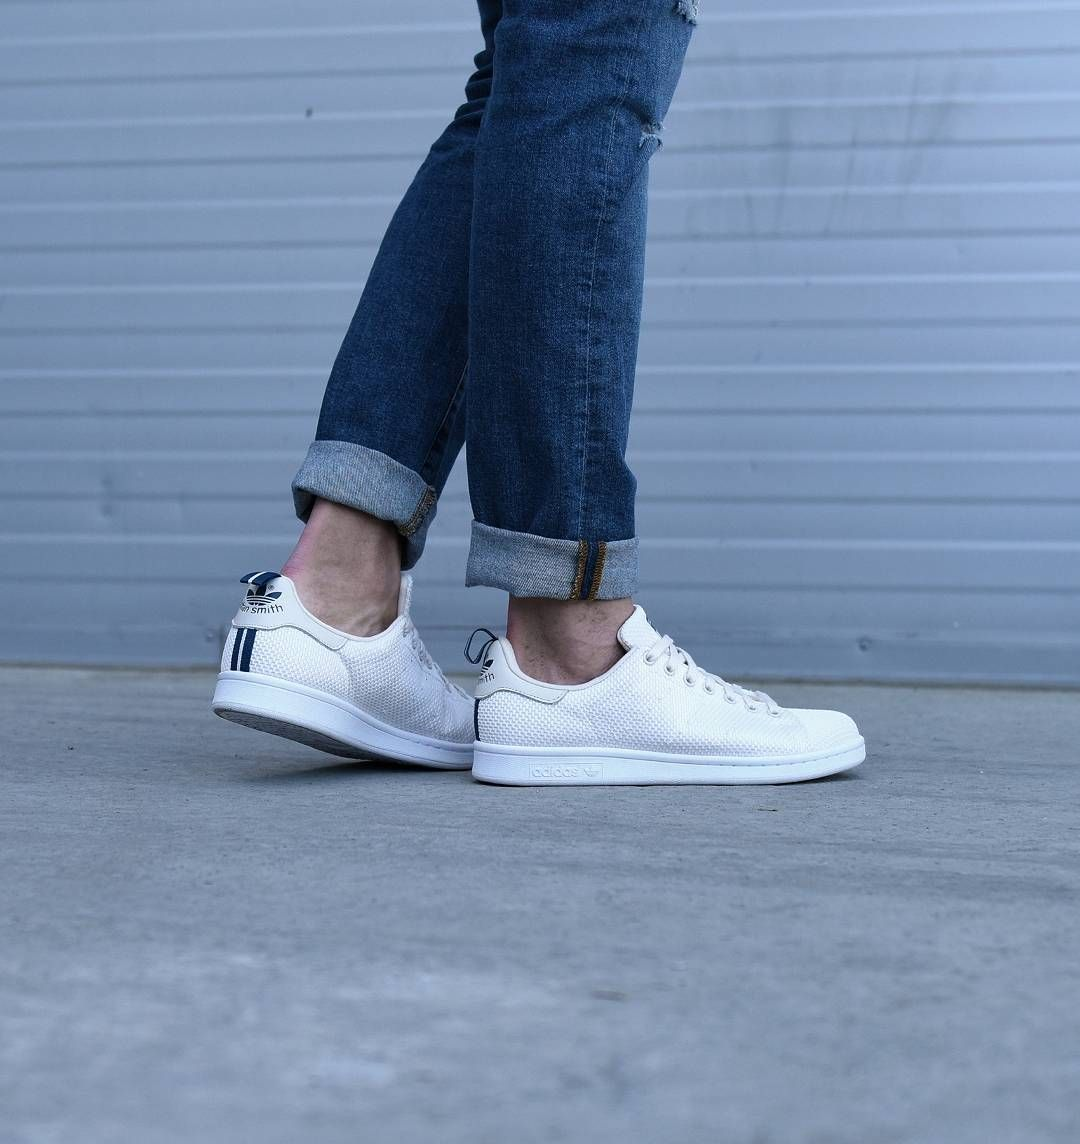 New Style of 2016 Adidas Originals Stan Smith Ck Sneakers